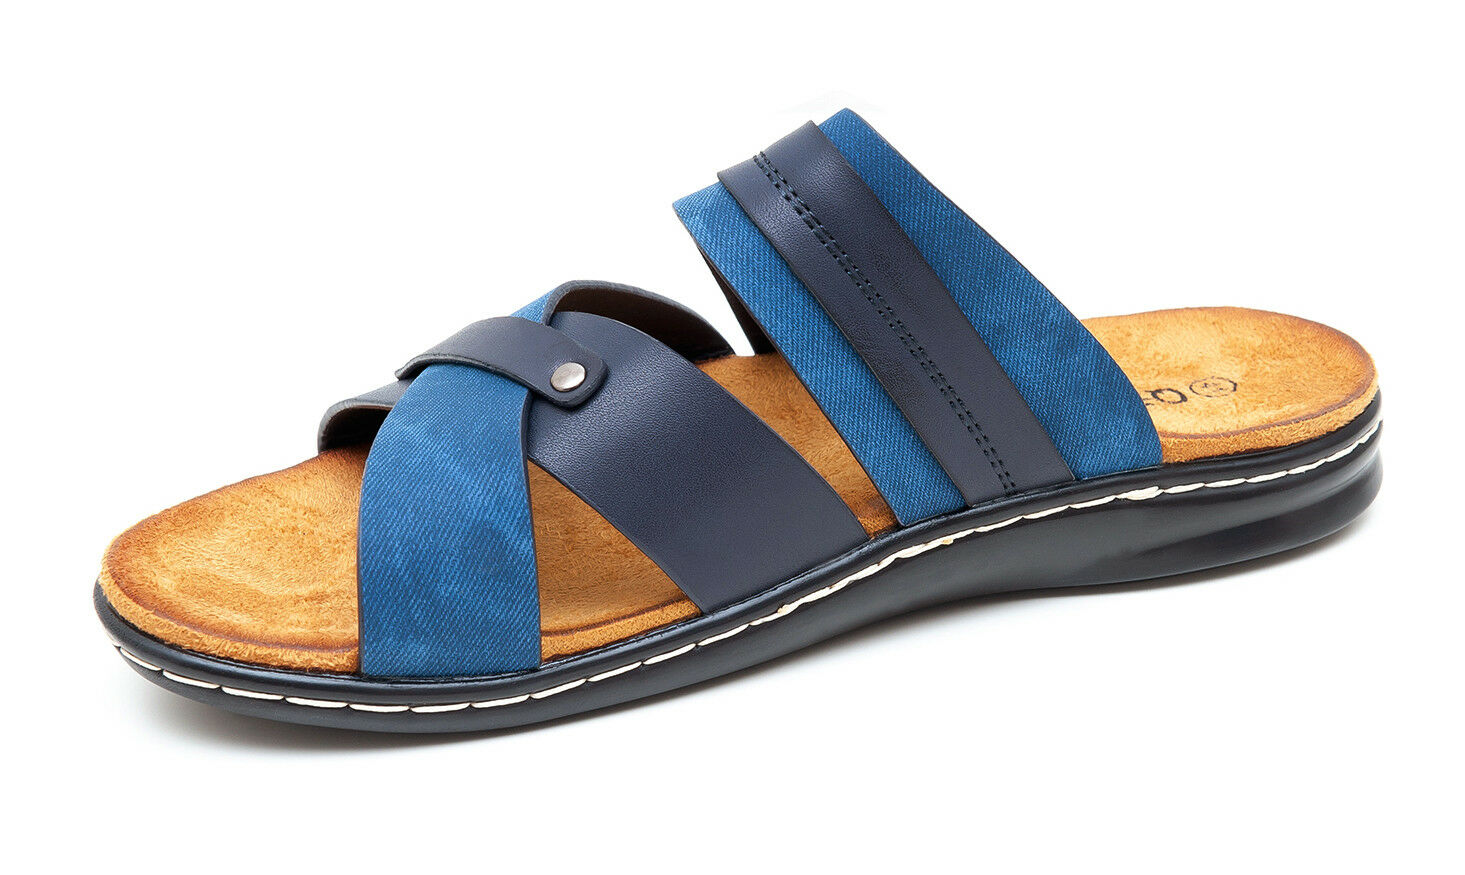 SANDALS MAN DIAMOND SUMMER BLUE SHOES MAN'S SHOES CASUAL SLIPPERS WALKING